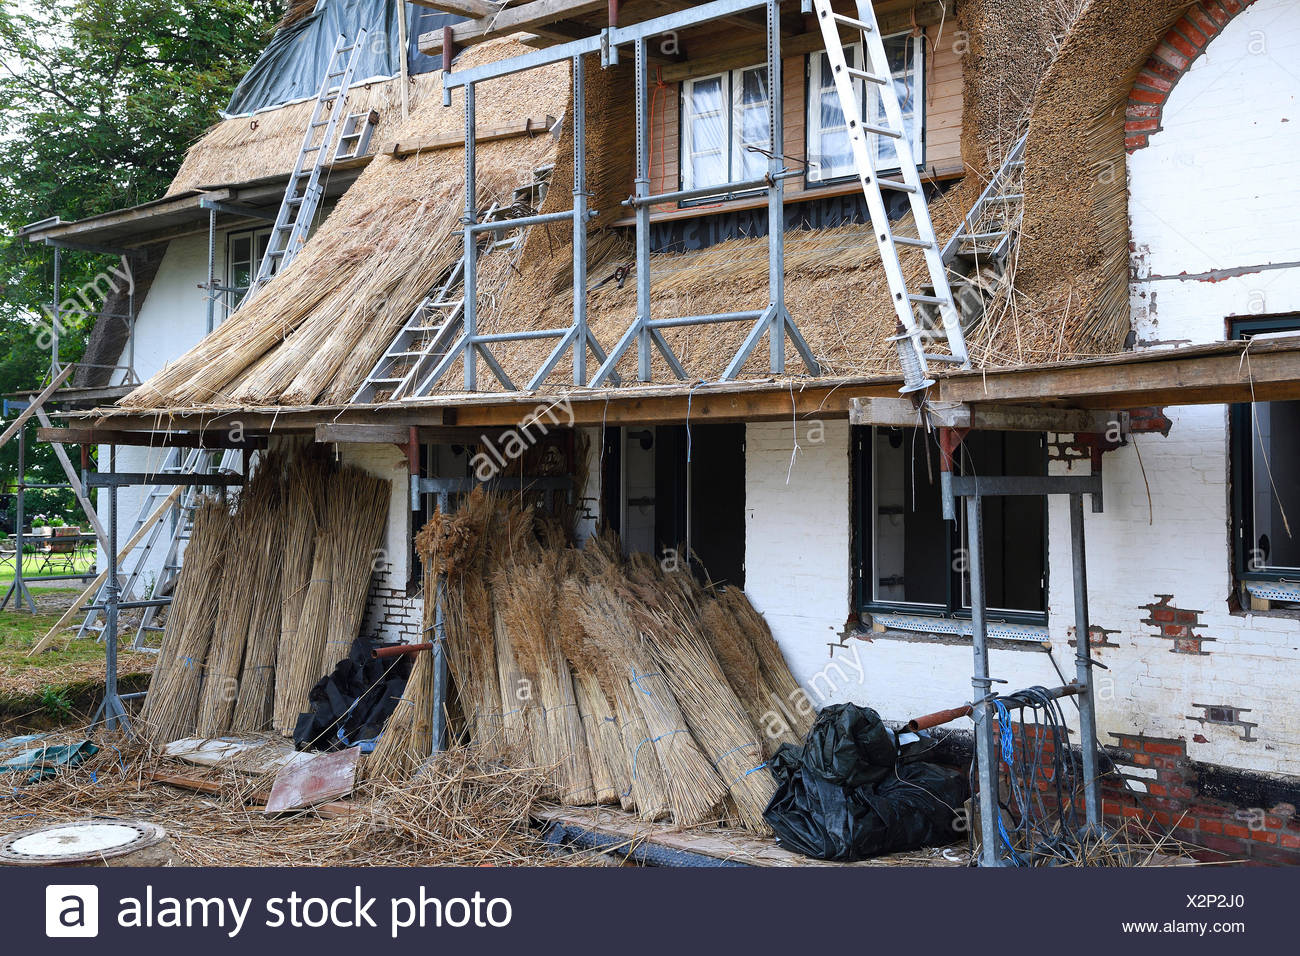 Old Frisian house with thatched roof, new thatching, Keitum, Sylt, North Frisian Islands, North Frisia, Schleswig-Holstein - Stock Image